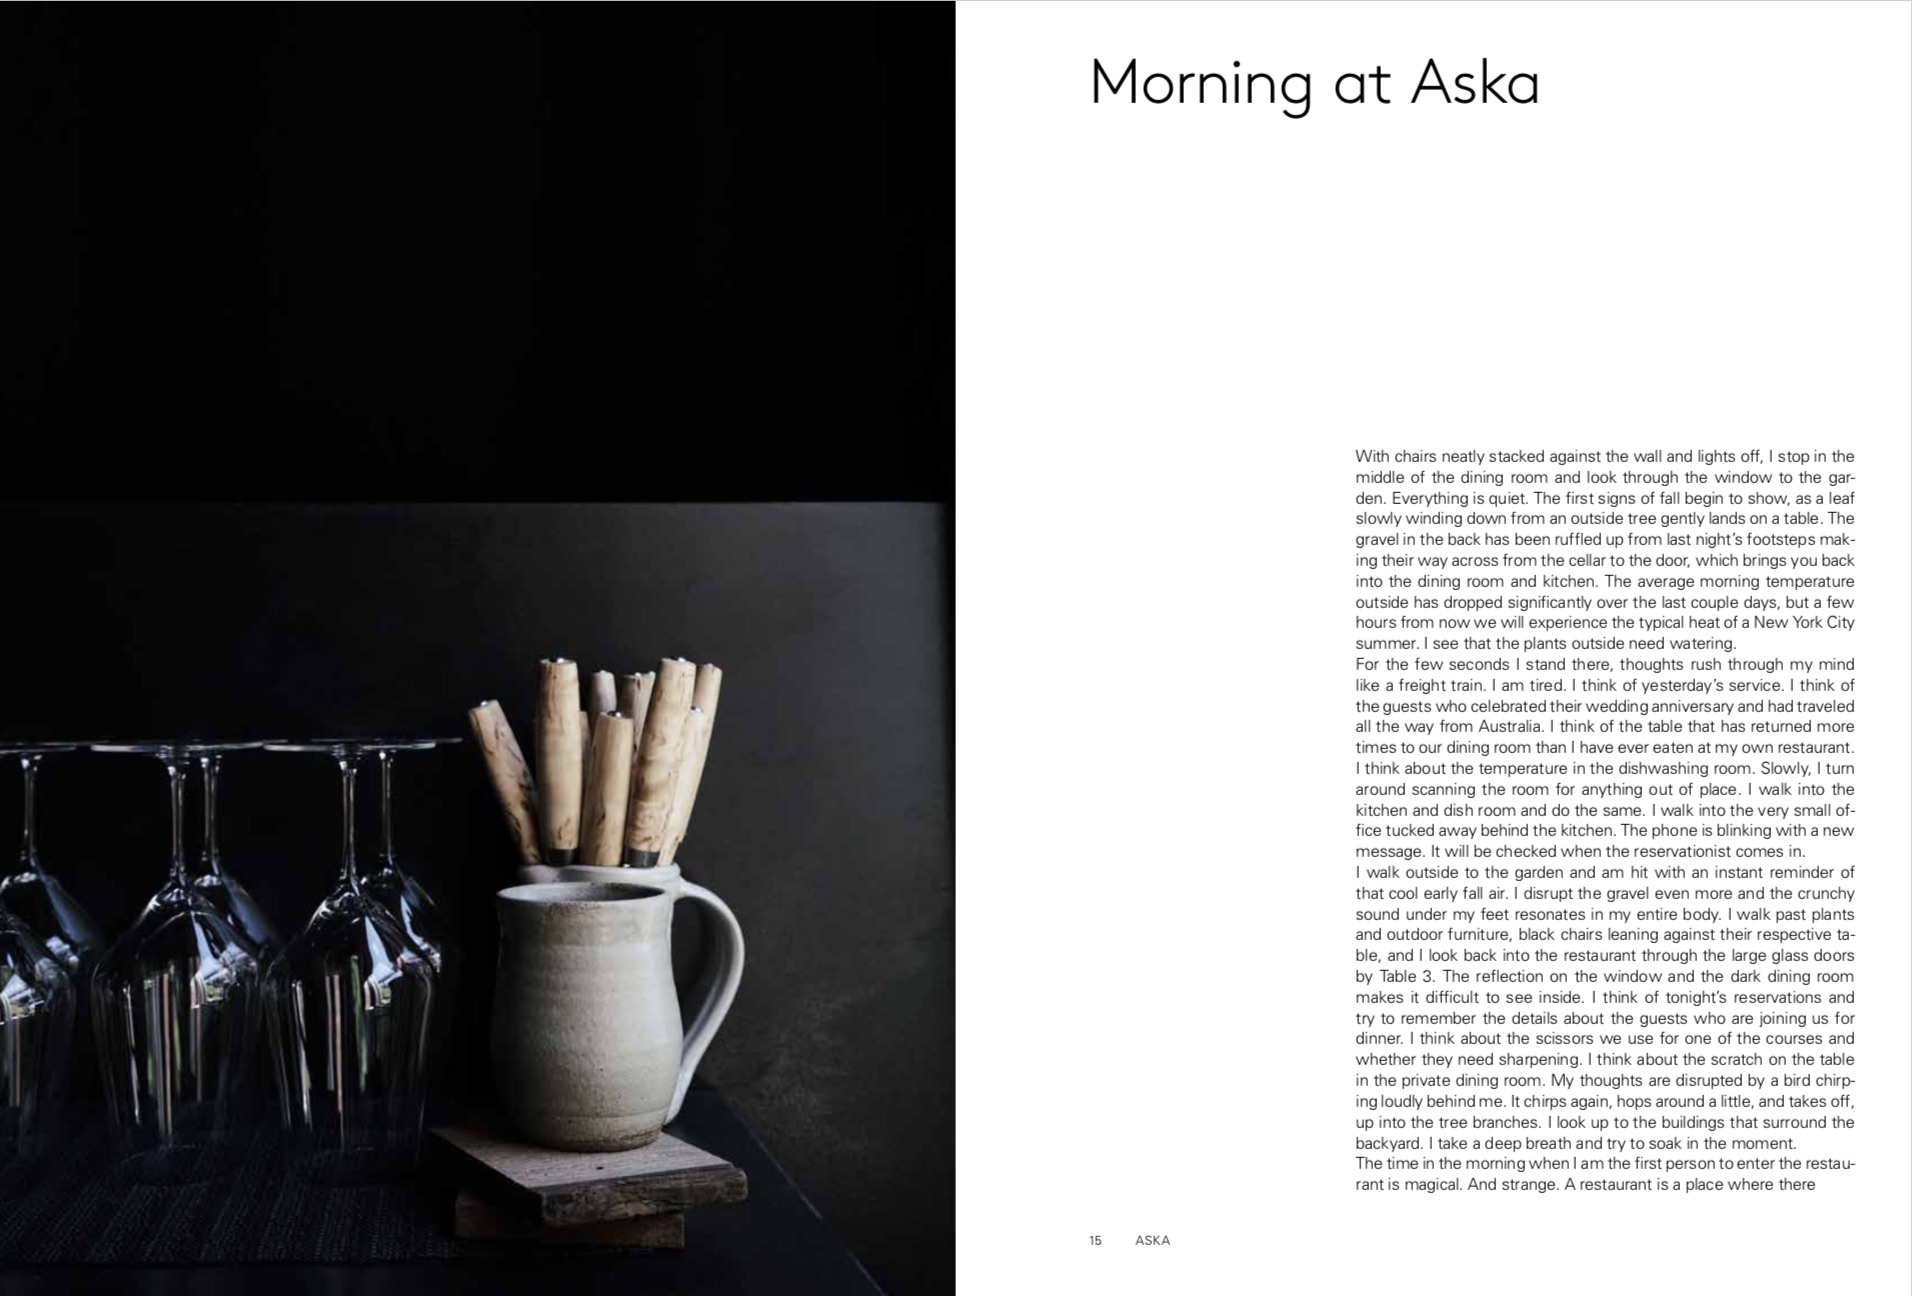 By Fredrik Berselius from Aska copyright Phaidon 2018